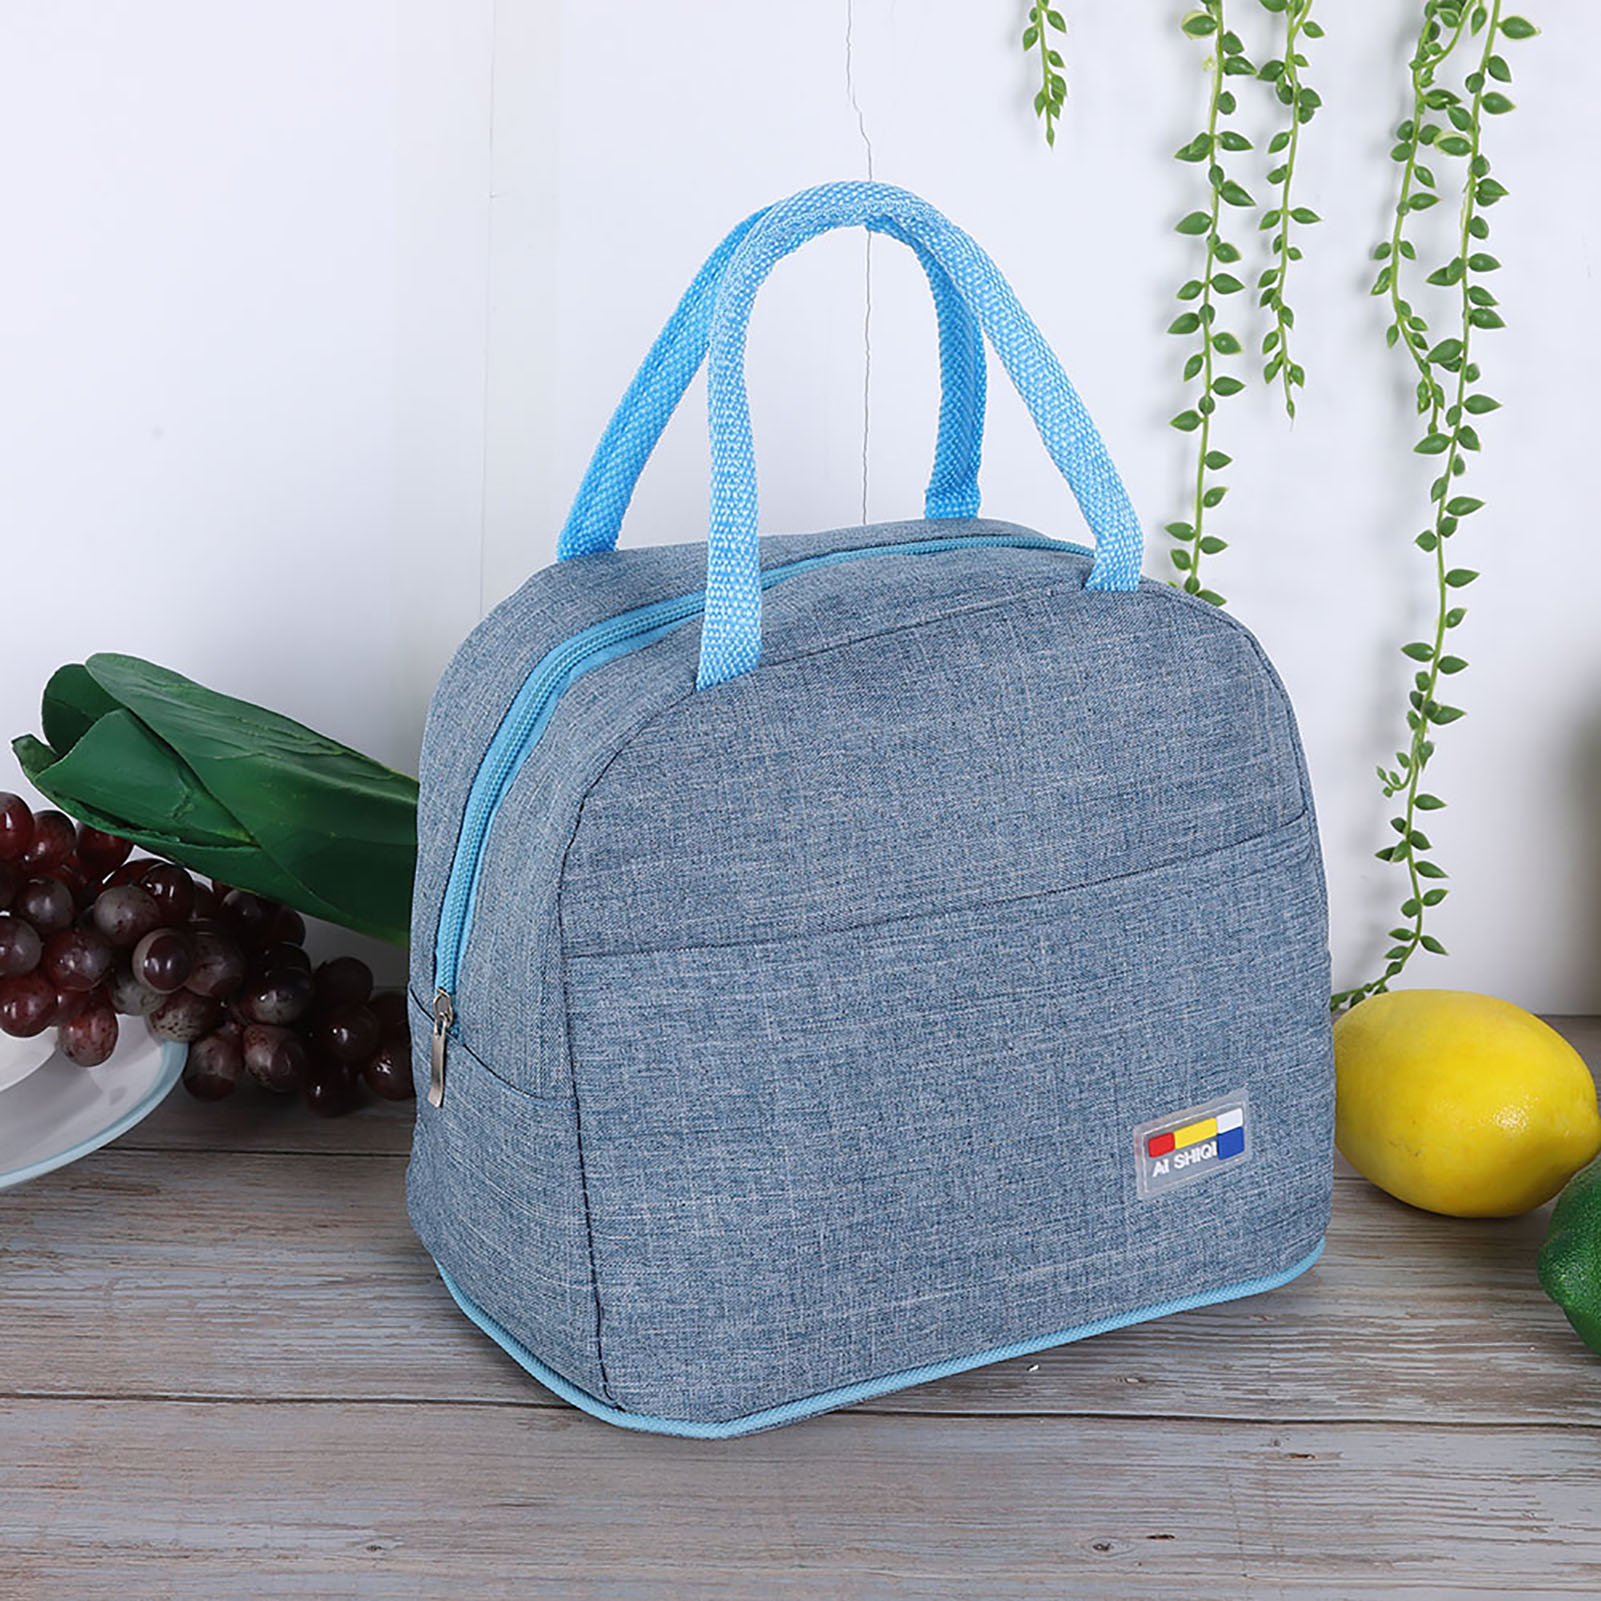 Portable-Lunch-Bag-Insulated-Thermal-Bags-Outdoor-Picnic-Travel-Food-Box-Bag thumbnail 30